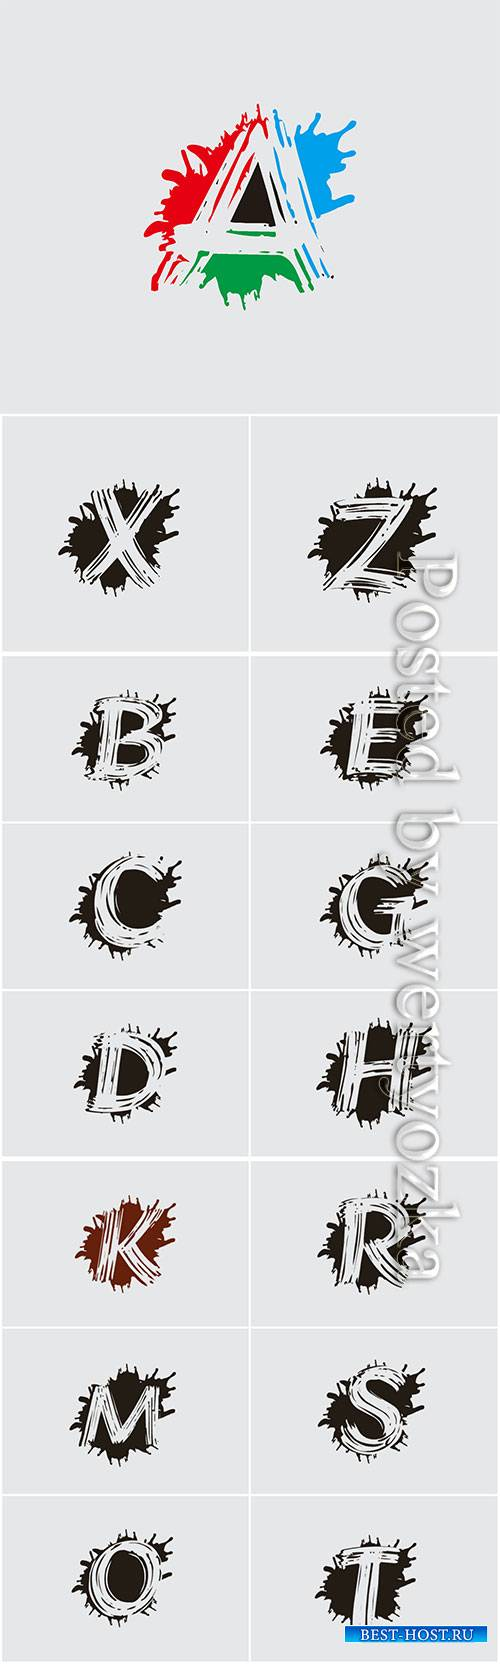 Letter logo icon splash vector design